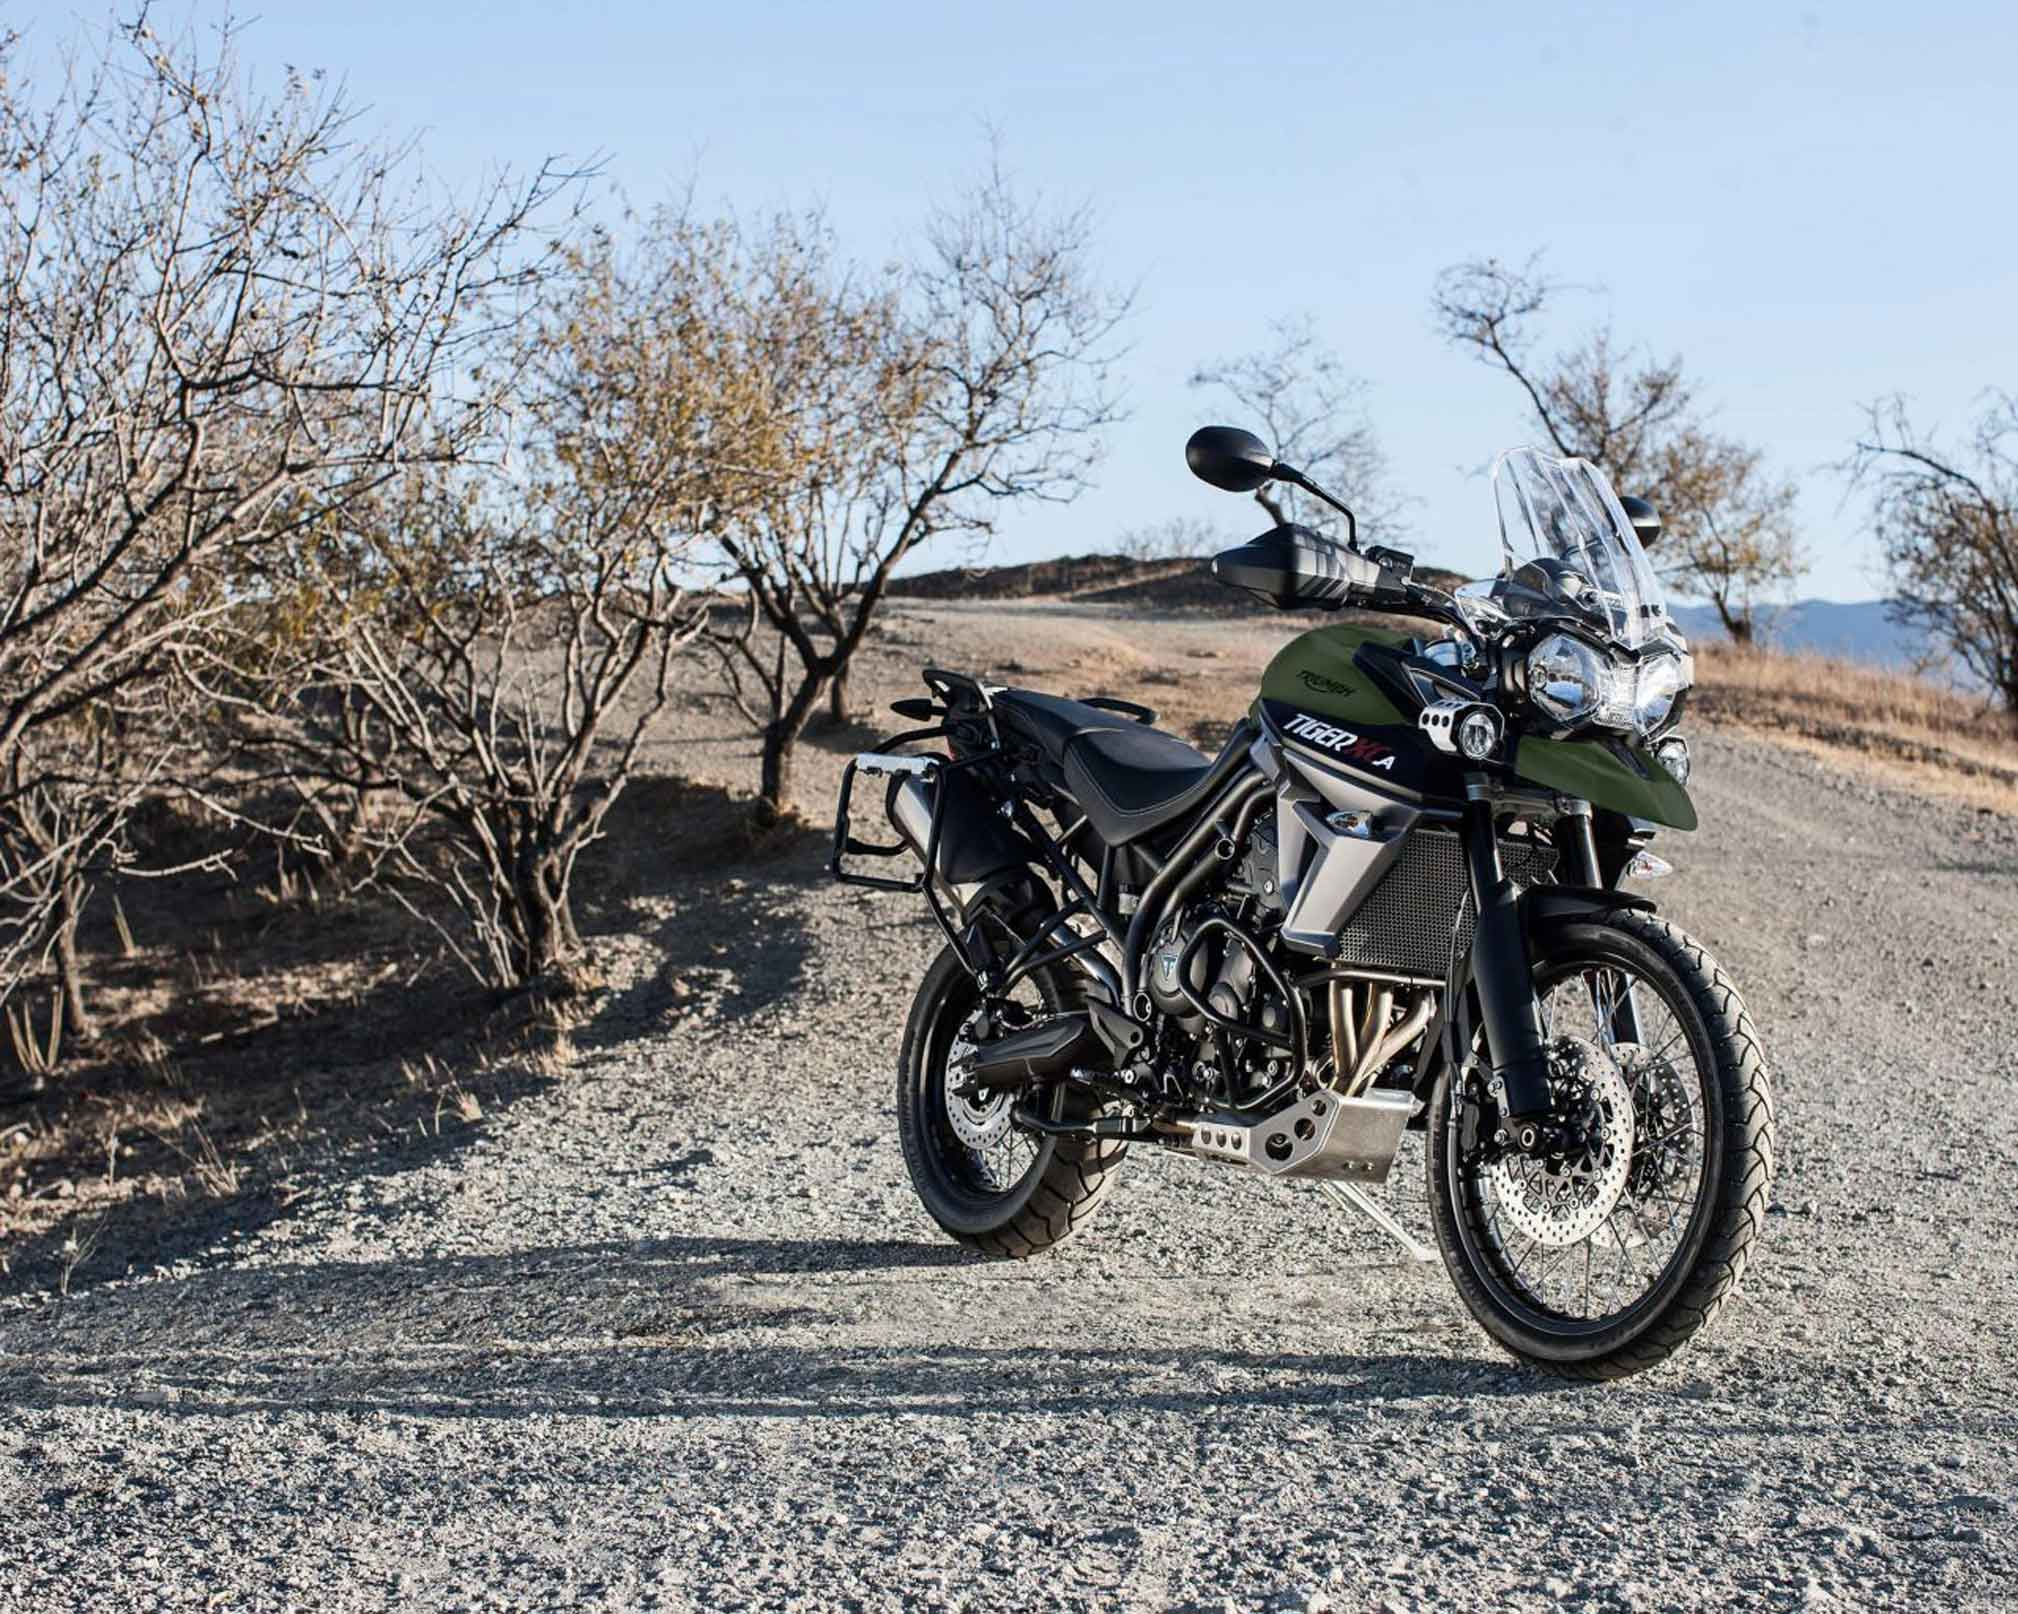 2017 triumph tiger 800 xca review